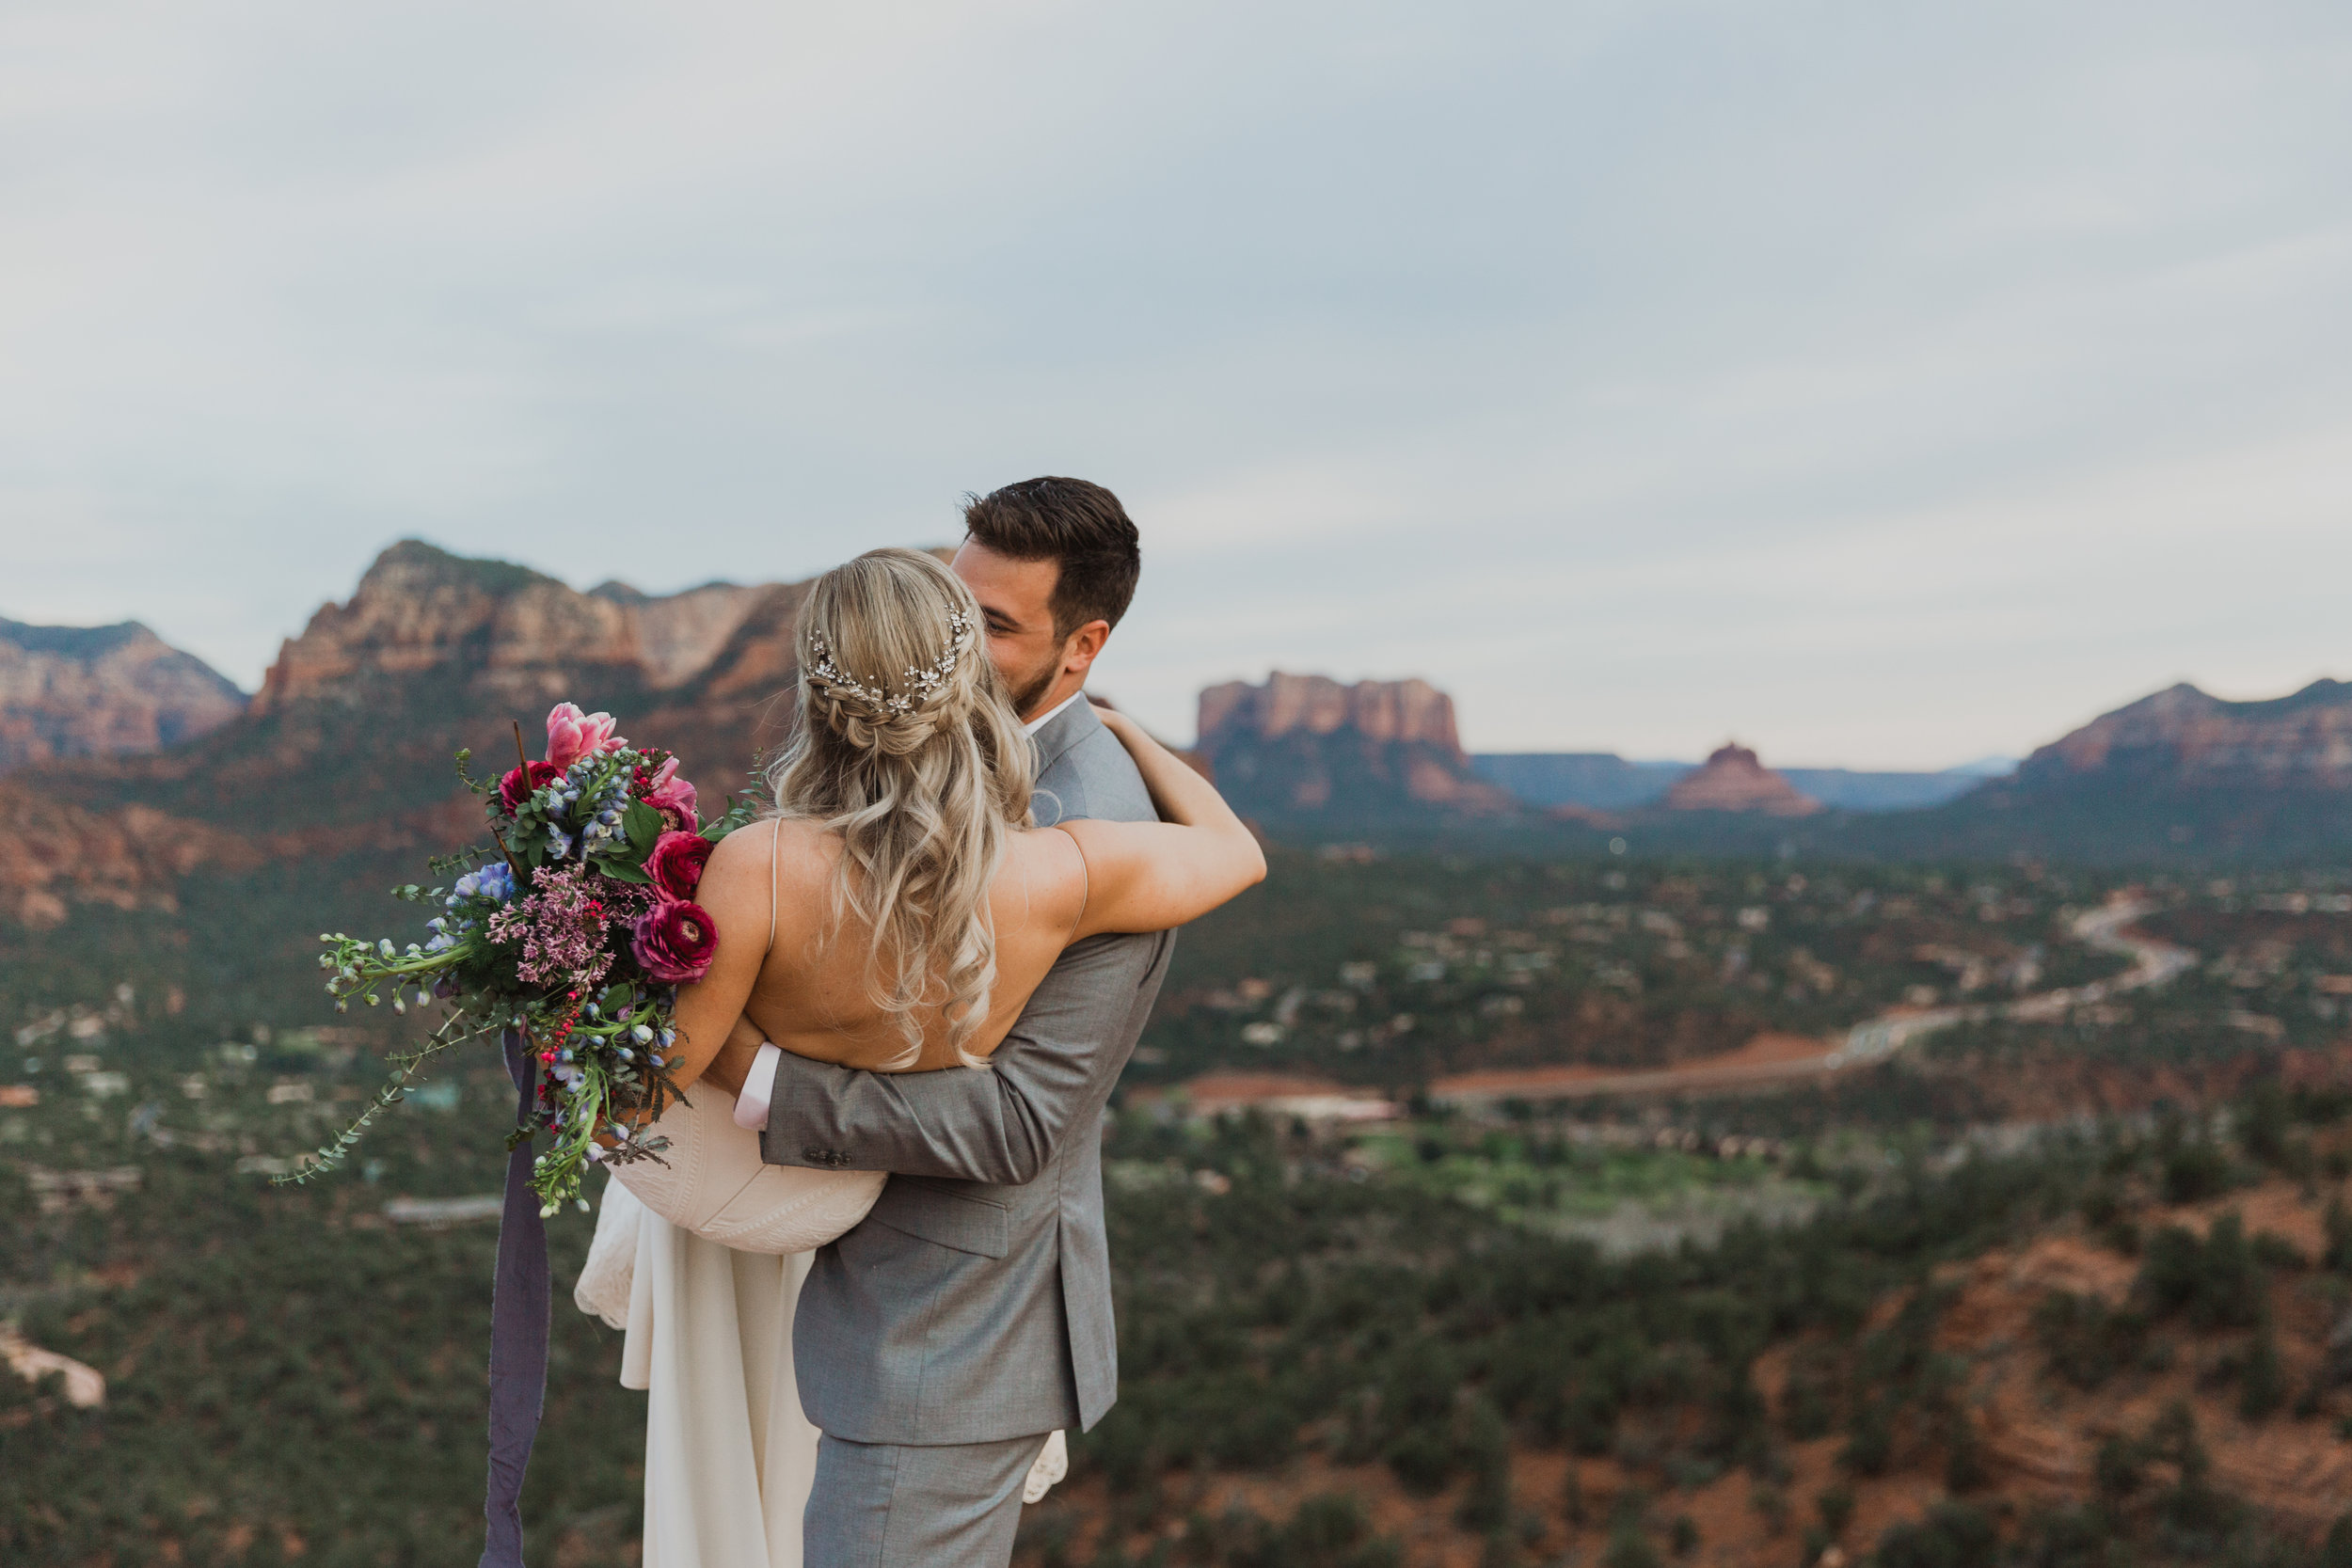 Stars and Moon Inspired Wedding in the Red Rocks of Sedona - Arizona Florist serving Phoenix scottsdale Mesa chandler Flagstaff Prescott - Bride and Groom Portraits